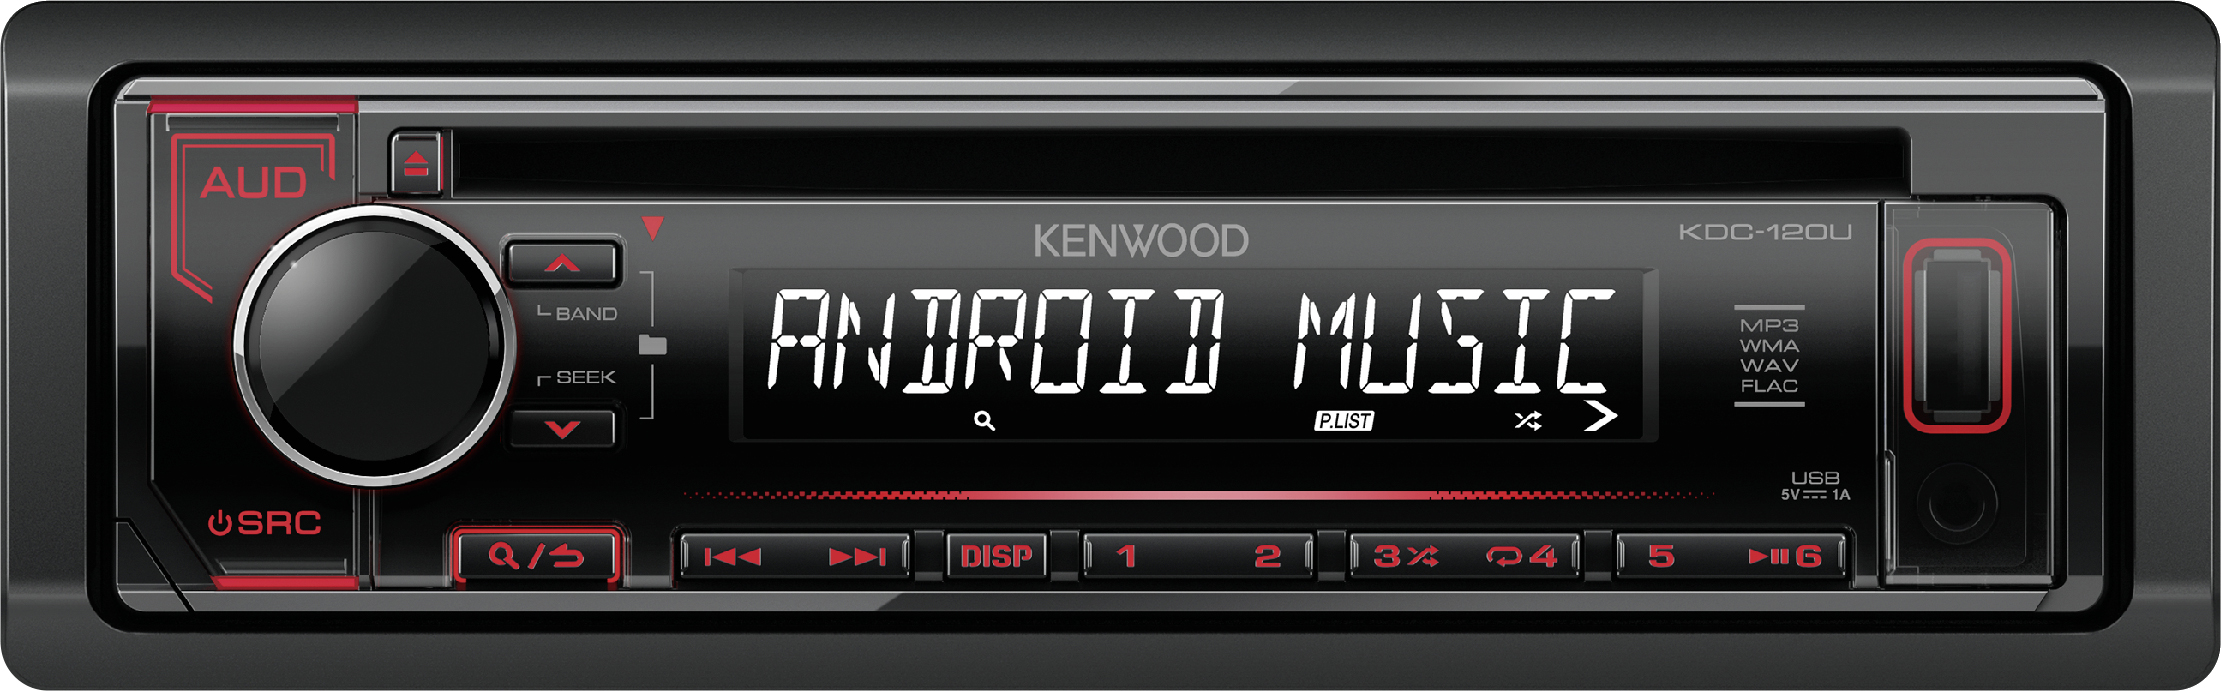 kenwood autoradio kdc 120ur autoradios zubeh r g nstig. Black Bedroom Furniture Sets. Home Design Ideas